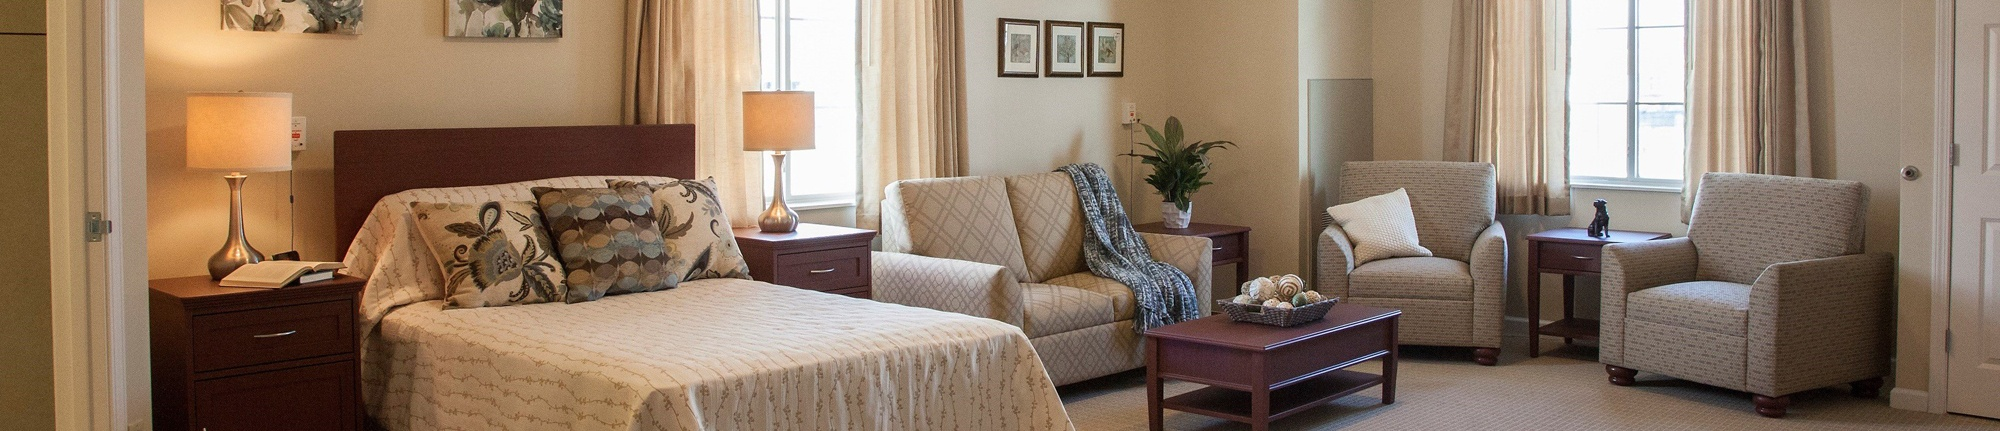 Suite Design for Assisted Living